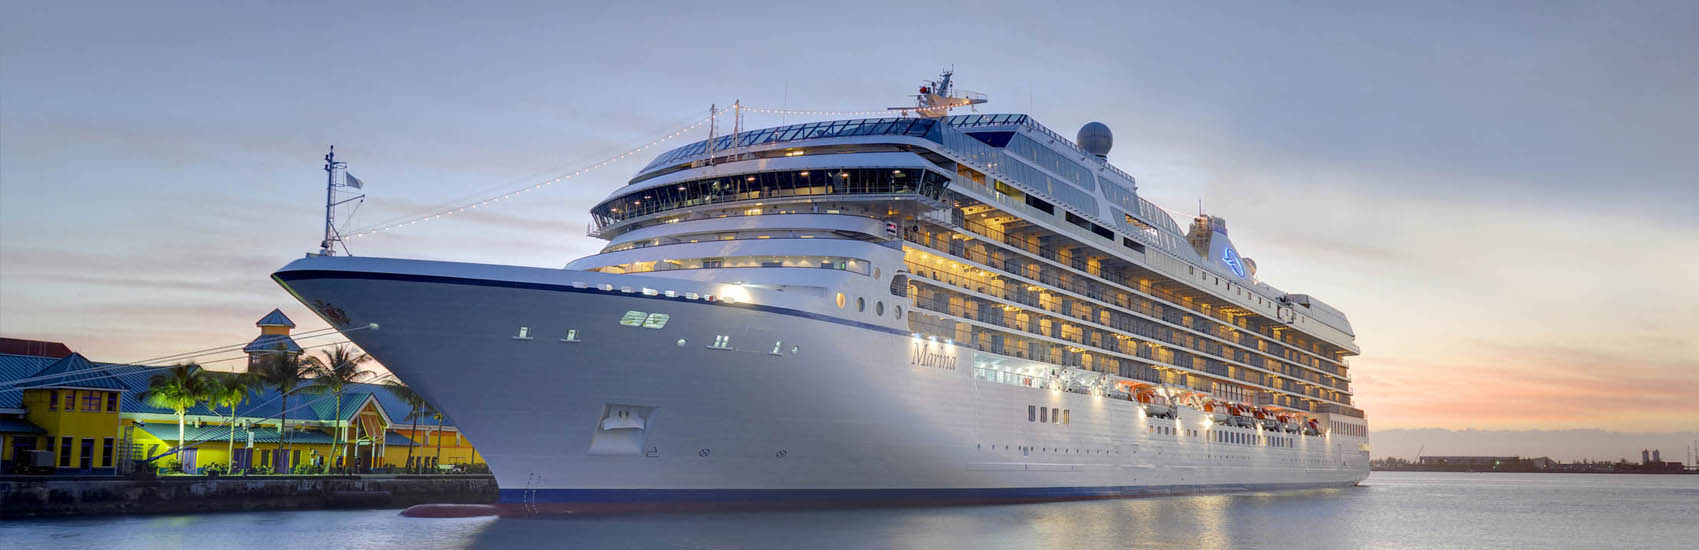 Discover the Caribbean with Oceania Cruises